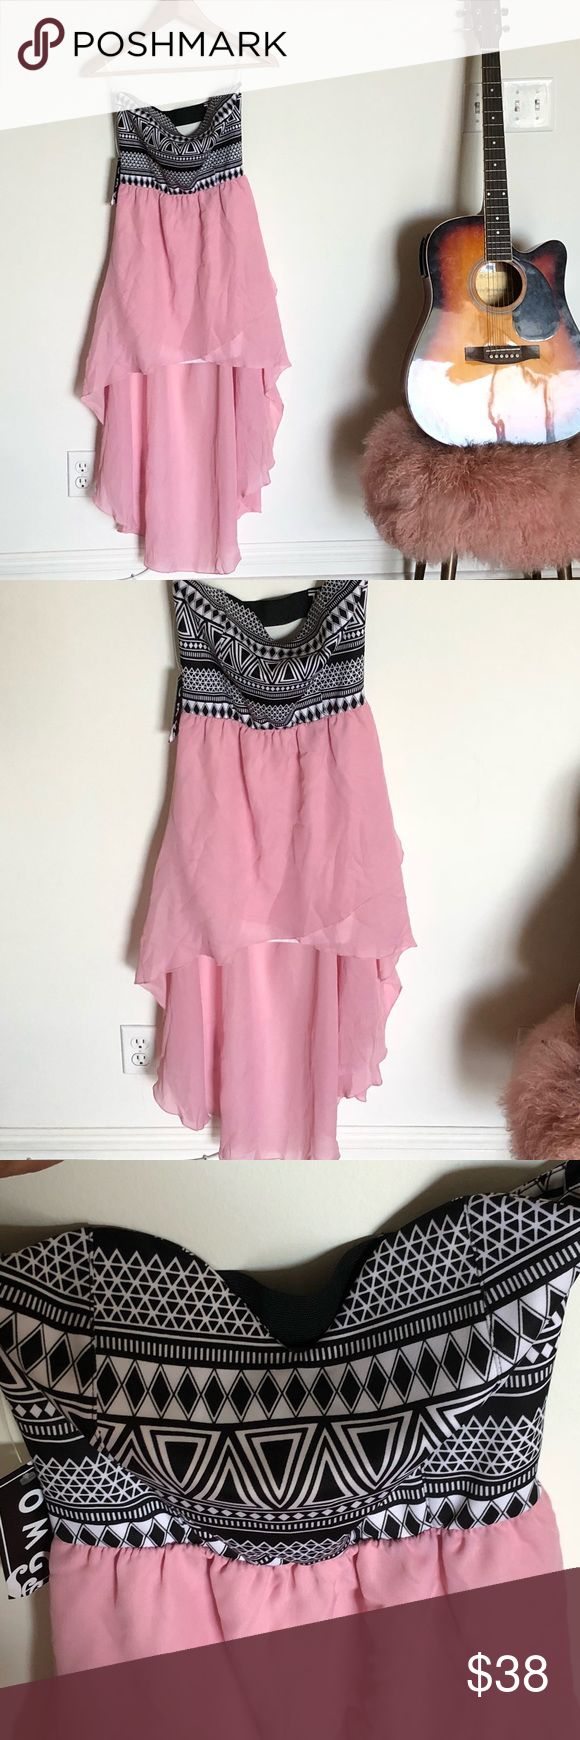 New sample dress - OMG - limited Brand new sample dress from OMG. Limited edition. Can't find at stores. OMG Dresses Midi